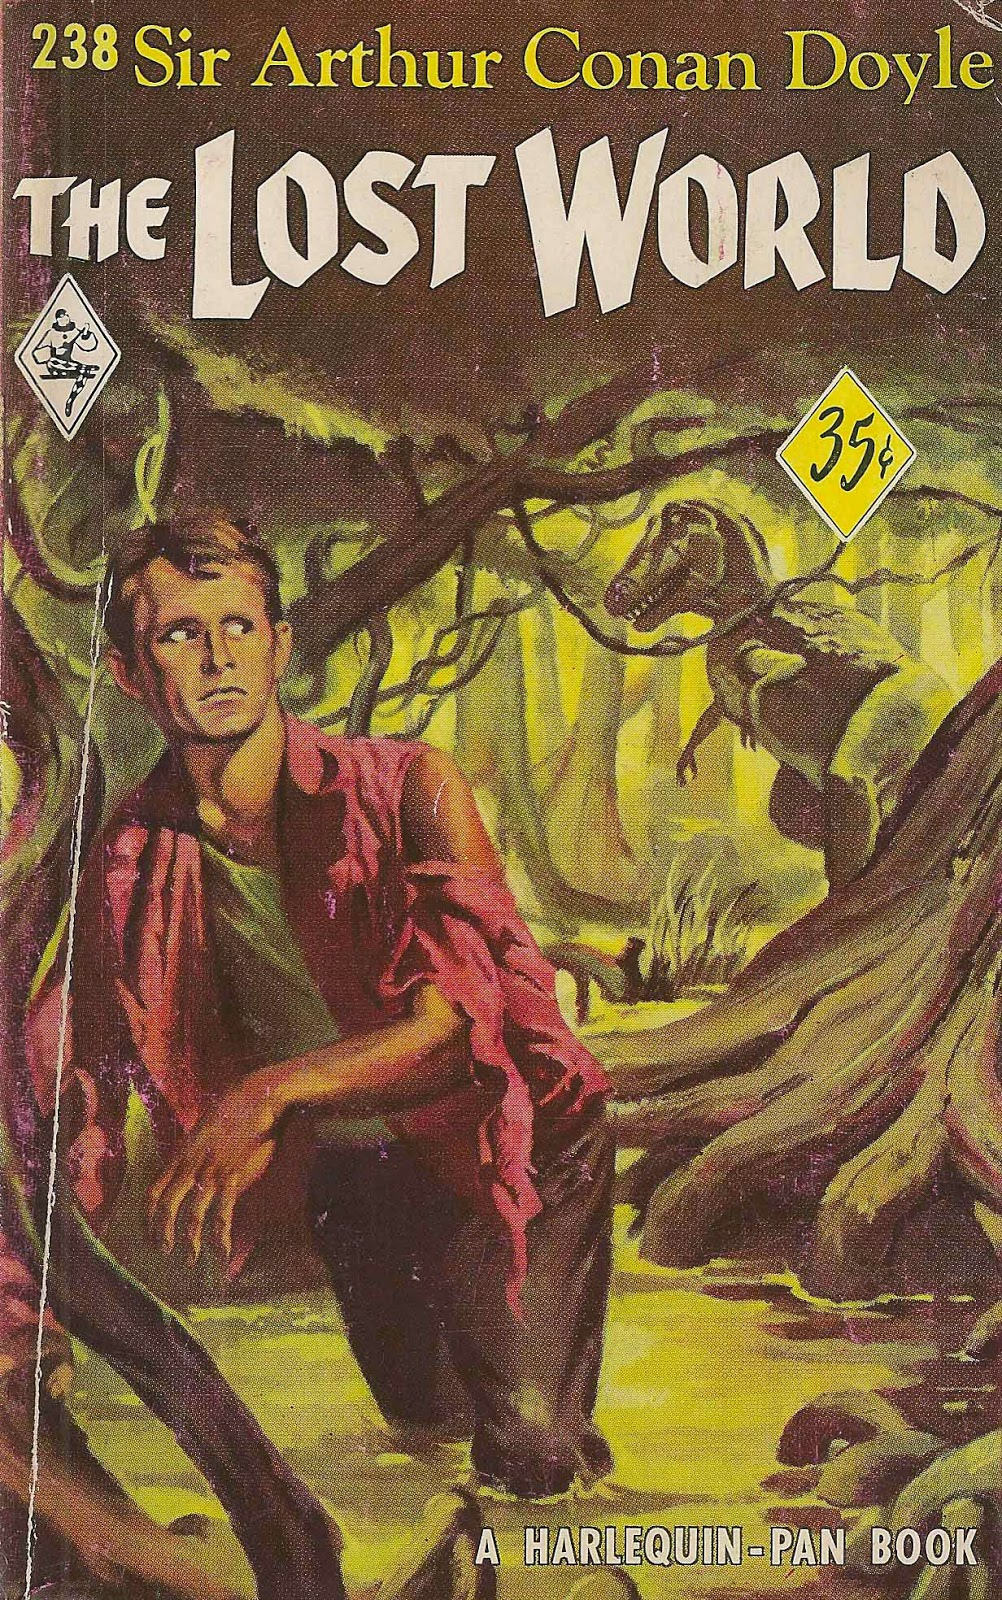 http://pulpcovers.com/the-lost-world/